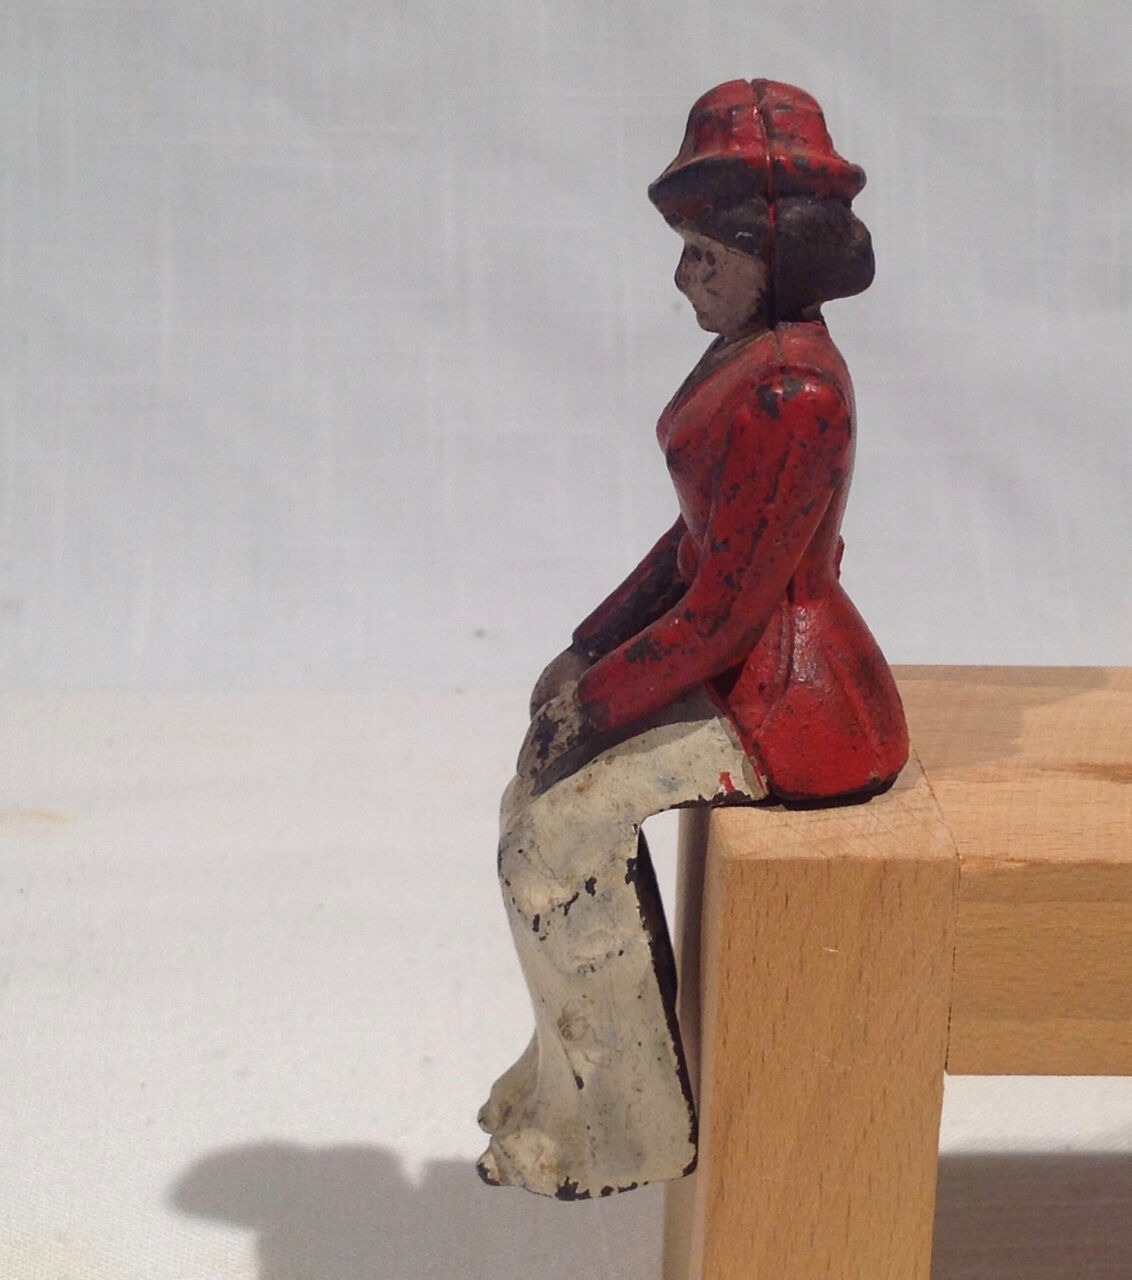 ORIGINAL 1906-1920's IRON WOMAN FOR IRON TOY HUBLEY BRAKE OR CARRIAGE